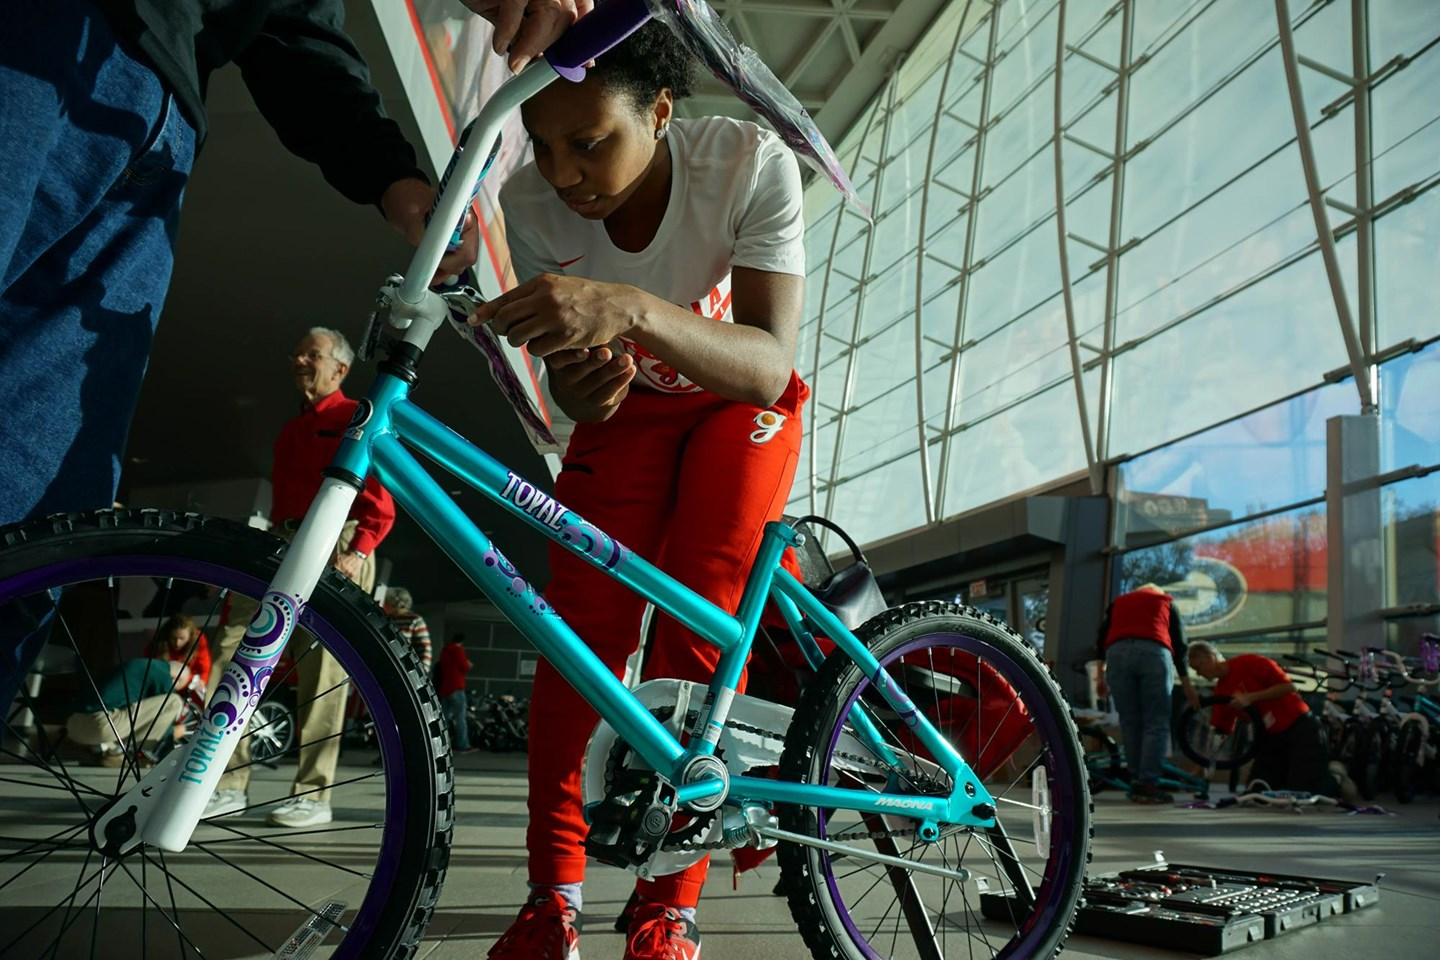 The Georgia women's basketball team joined members of the Fastbreak Club at Stegeman Coliseum to assemble bicycles for children on Monday. (Photo from Georgia Sports Communication)